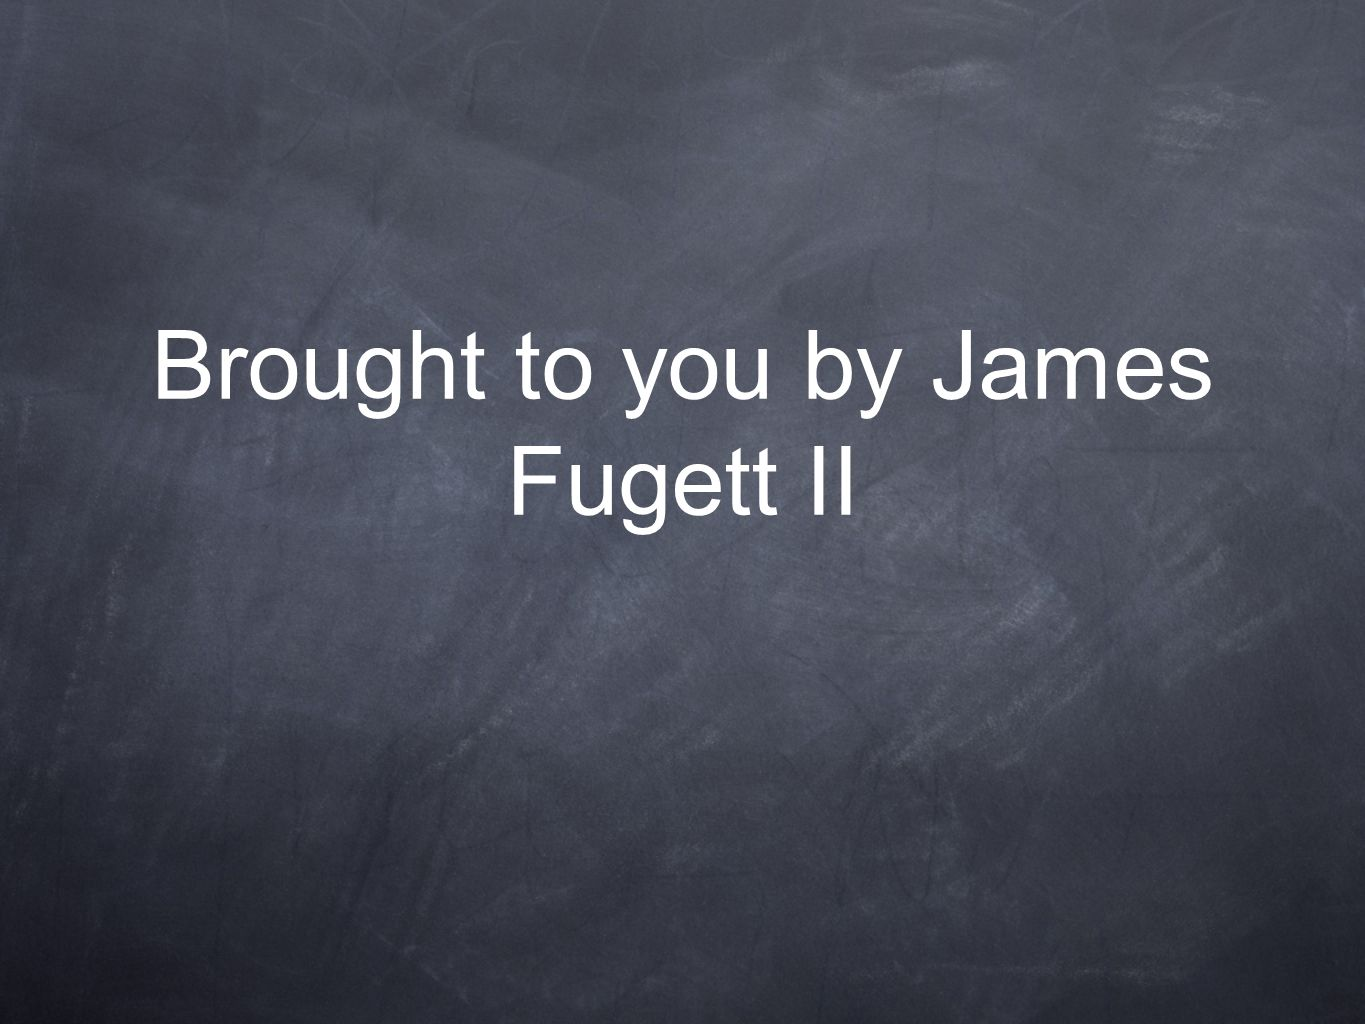 Brought to you by James Fugett II